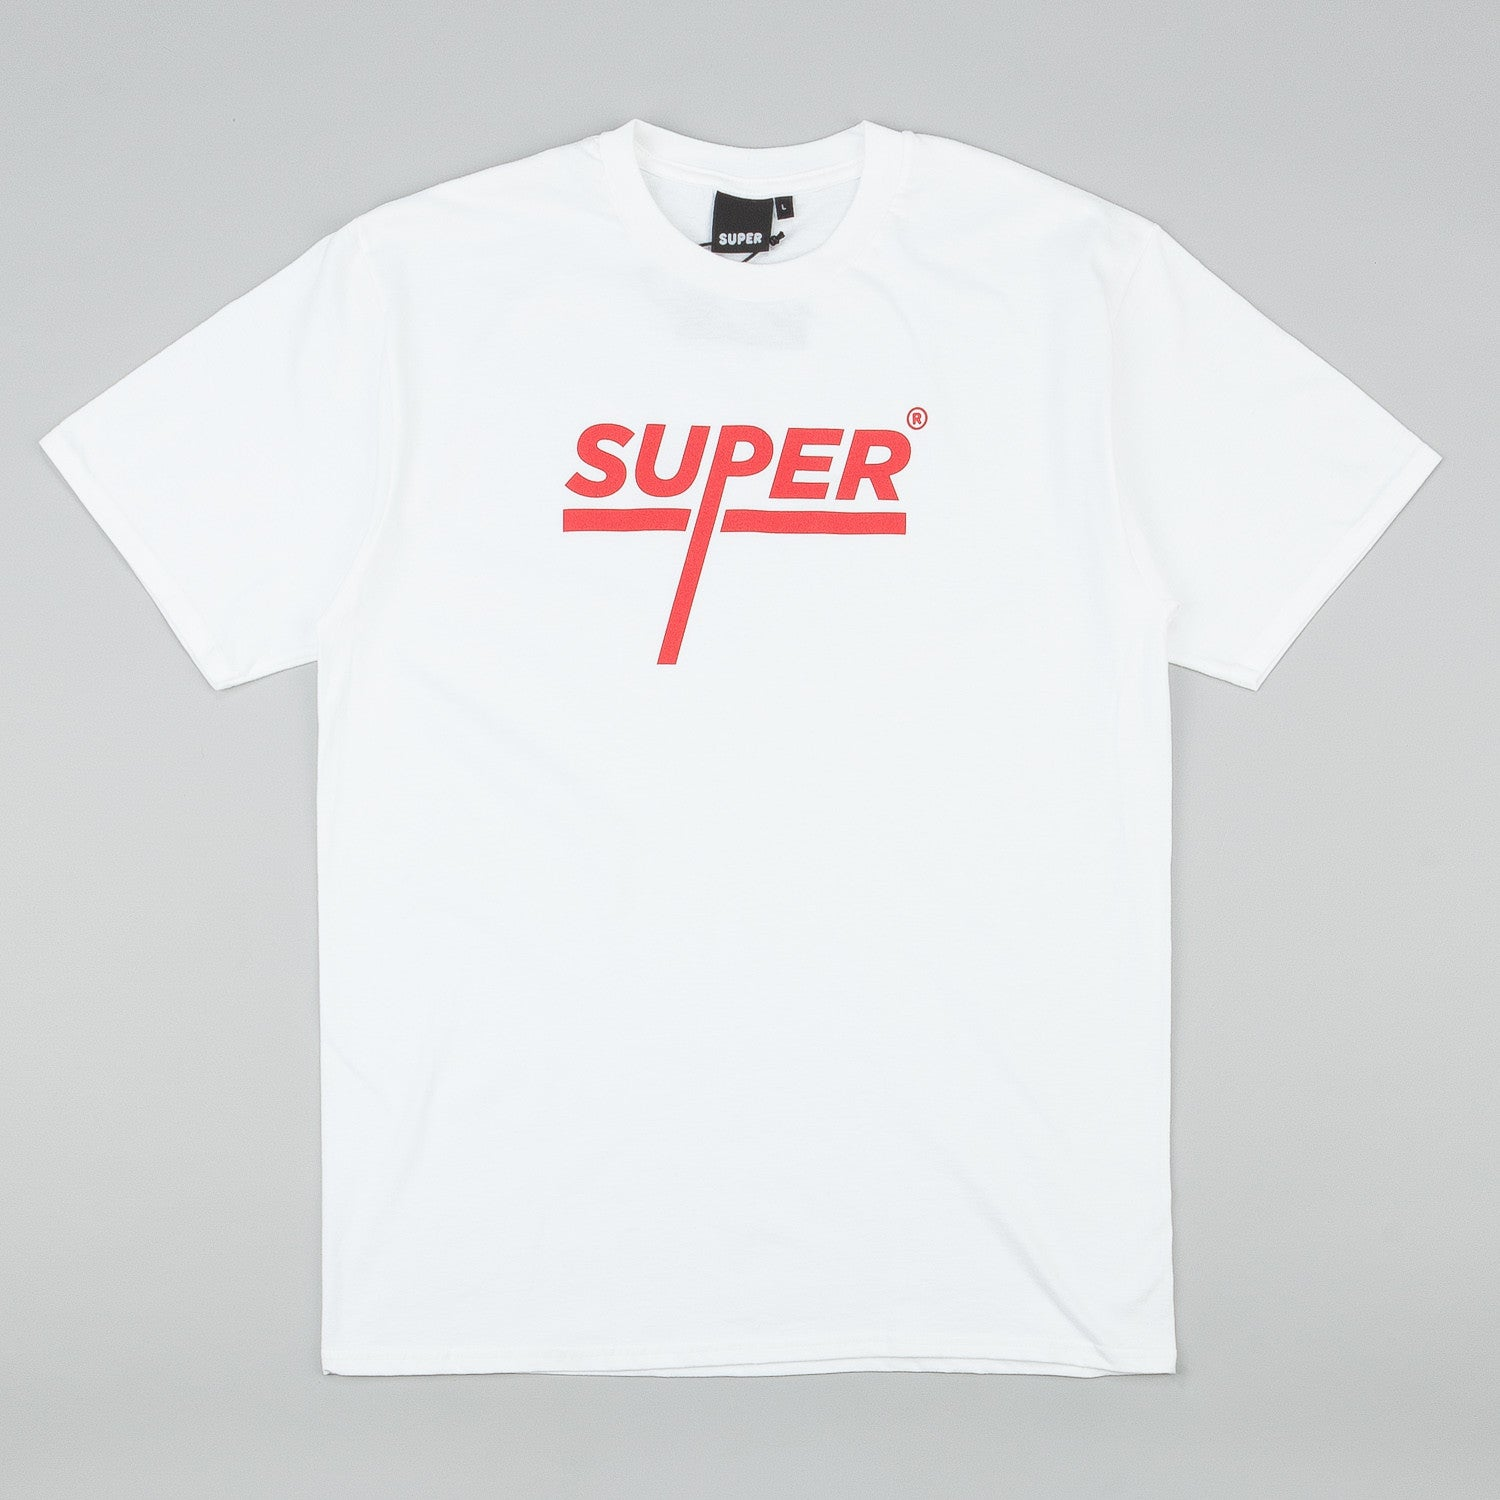 Colorsuper Super Titled T-Shirt